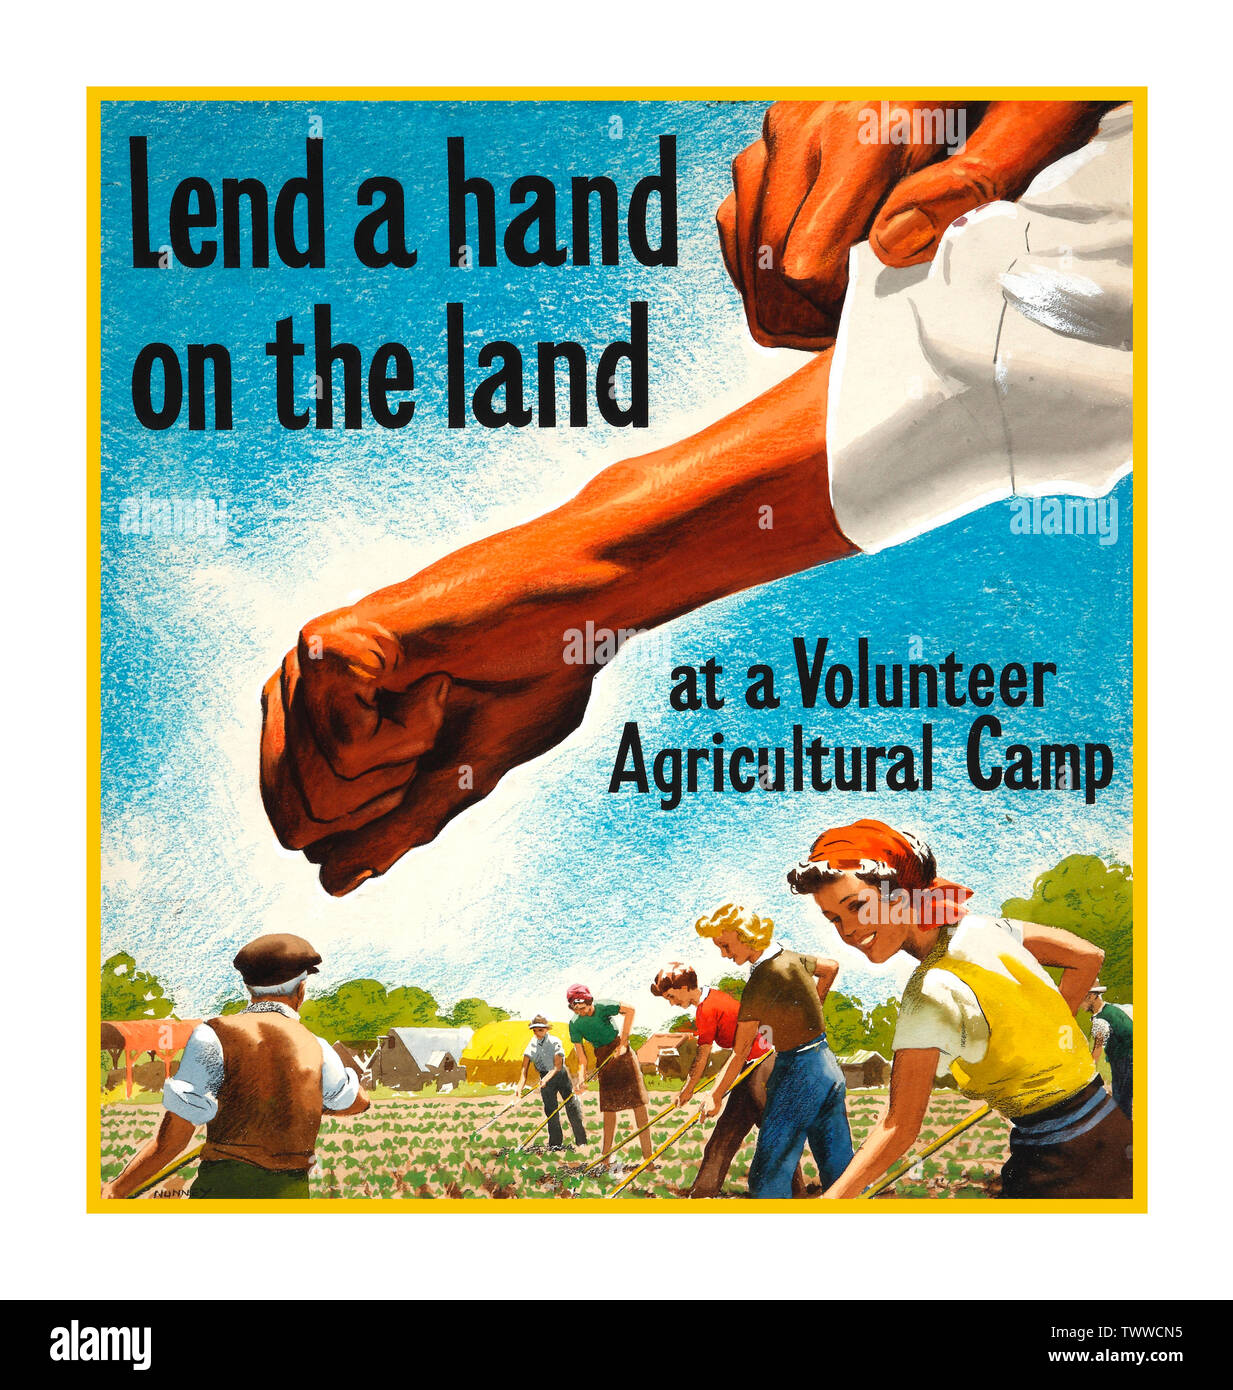 """Vintage WW2 wartime food production harvest Propaganda Appeal Poster UK """"Lend a hand on the land at a Volunteer Agricultural Camp"""" 1940's wartime Second World War food production poster by John Nunney World War II - Stock Image"""